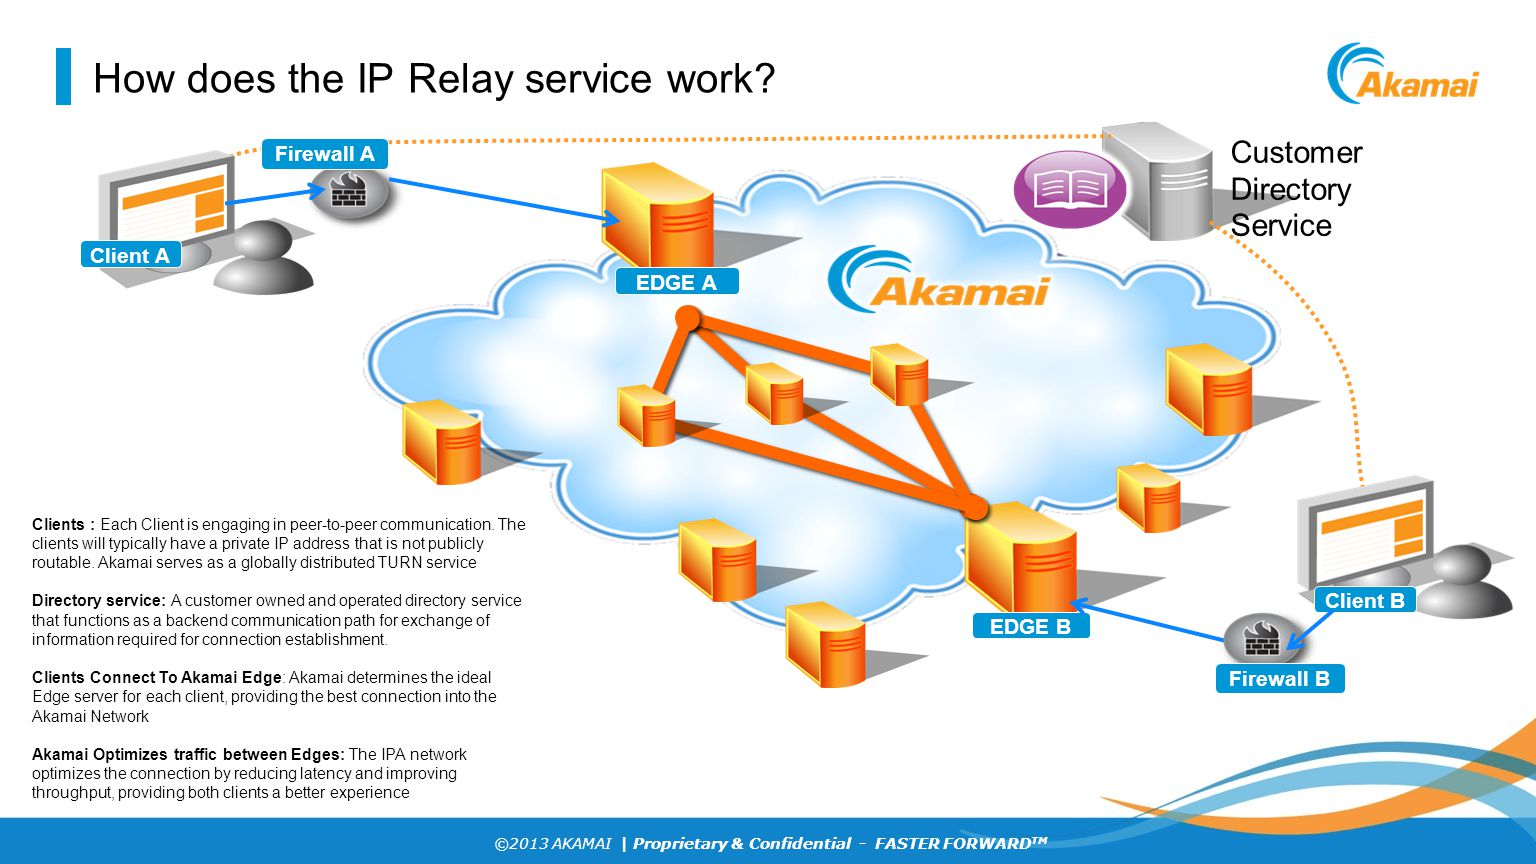 How does the IP Relay service work